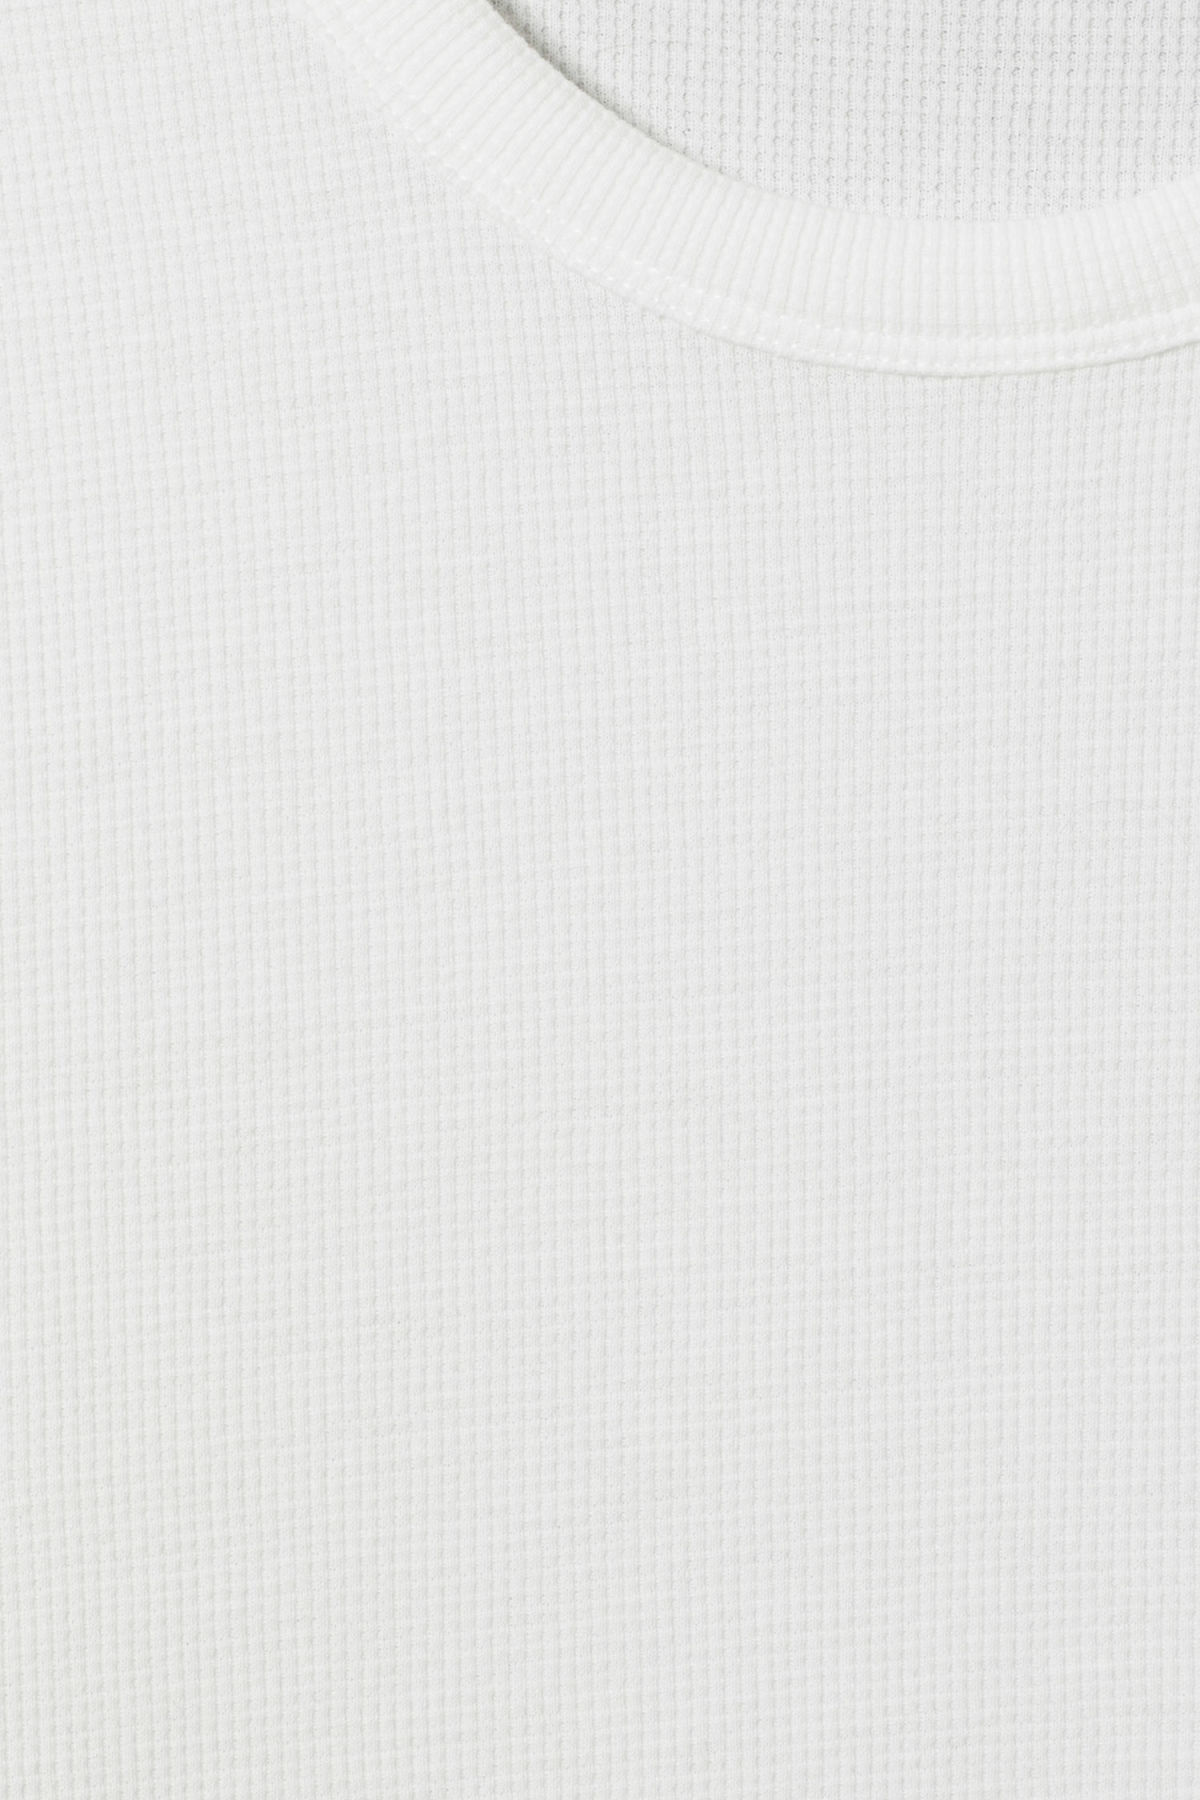 Detailed image of Weekday grinko t-shirt in white